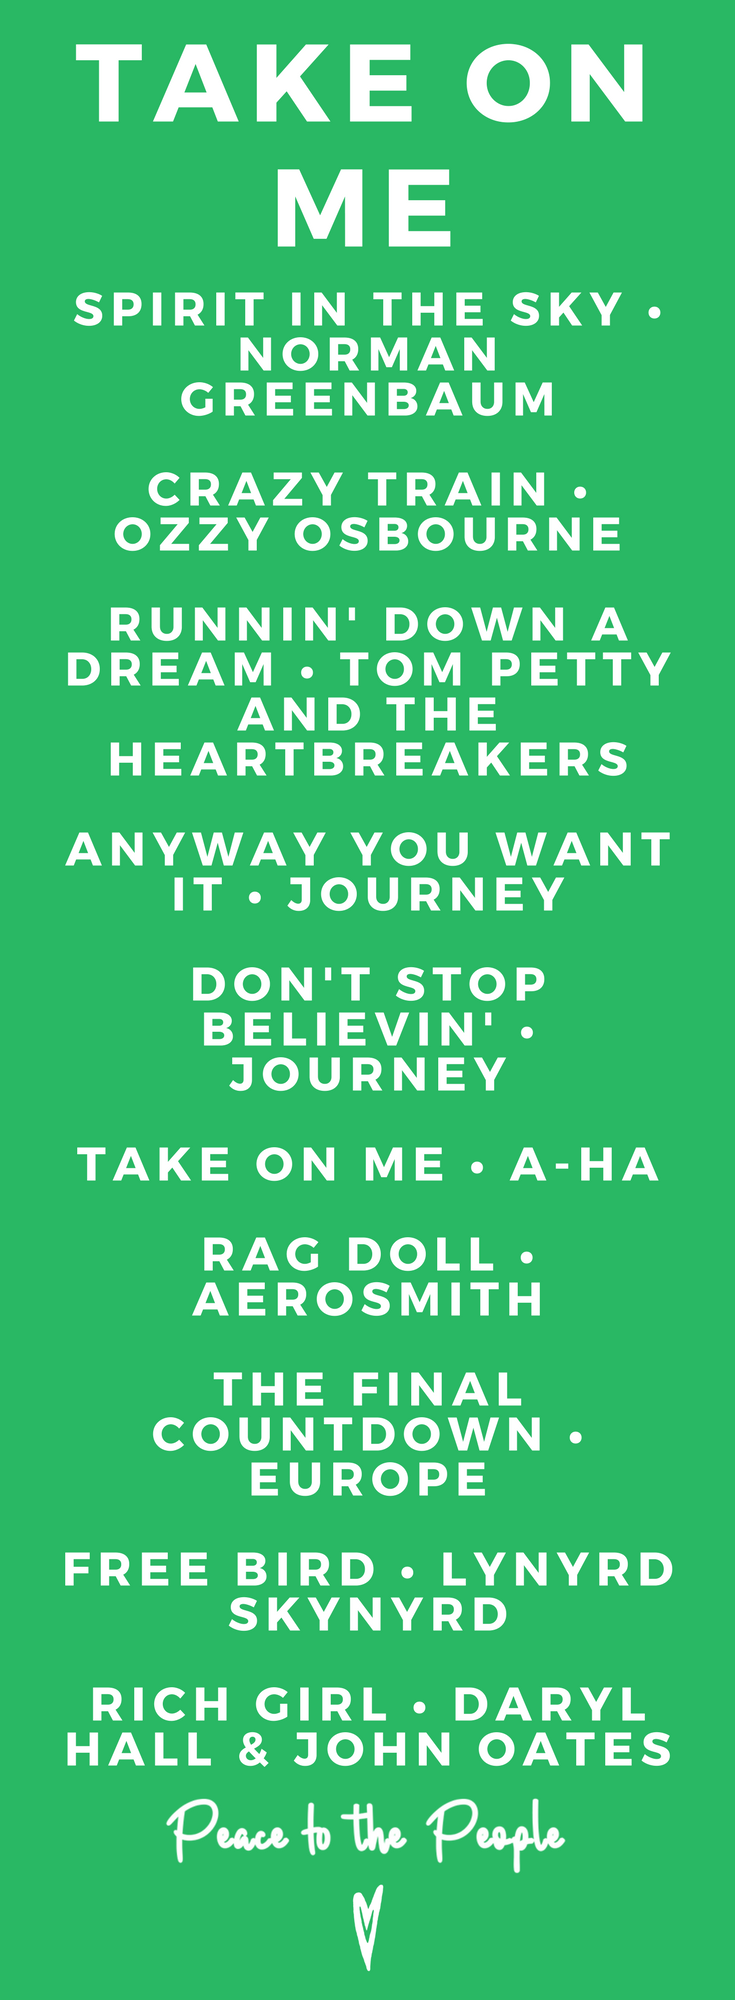 Take On Me • Playlists • Music, Fitness, Yoga, Peaceful, Feel Good • Peace to the People.png